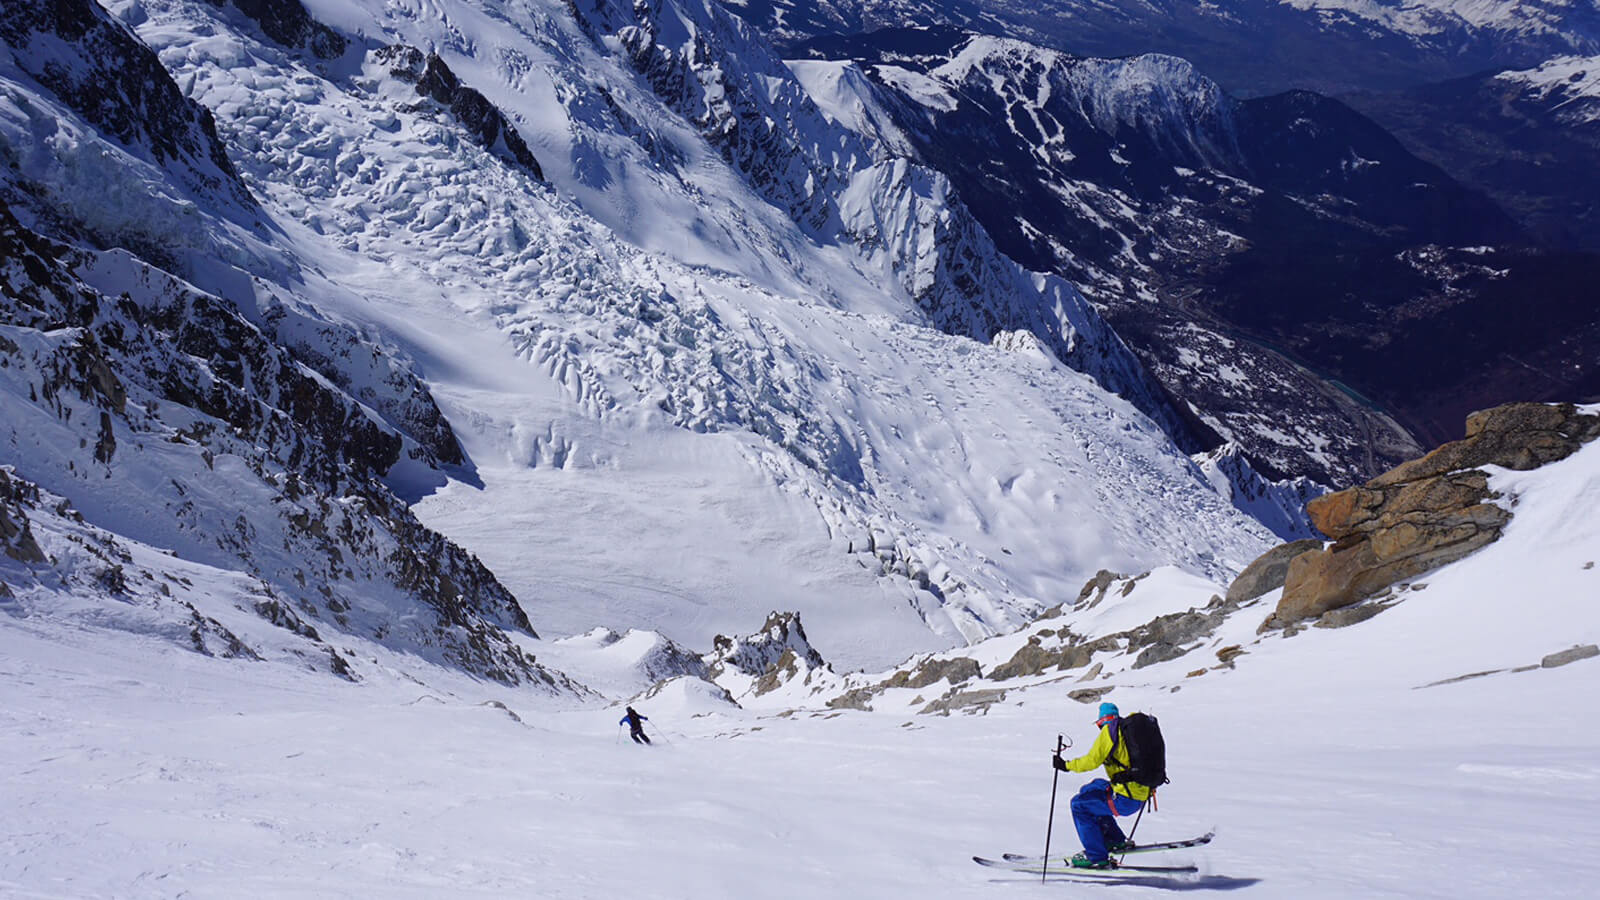 IFMGA Guide Mike Arnold skiing in Chamonix